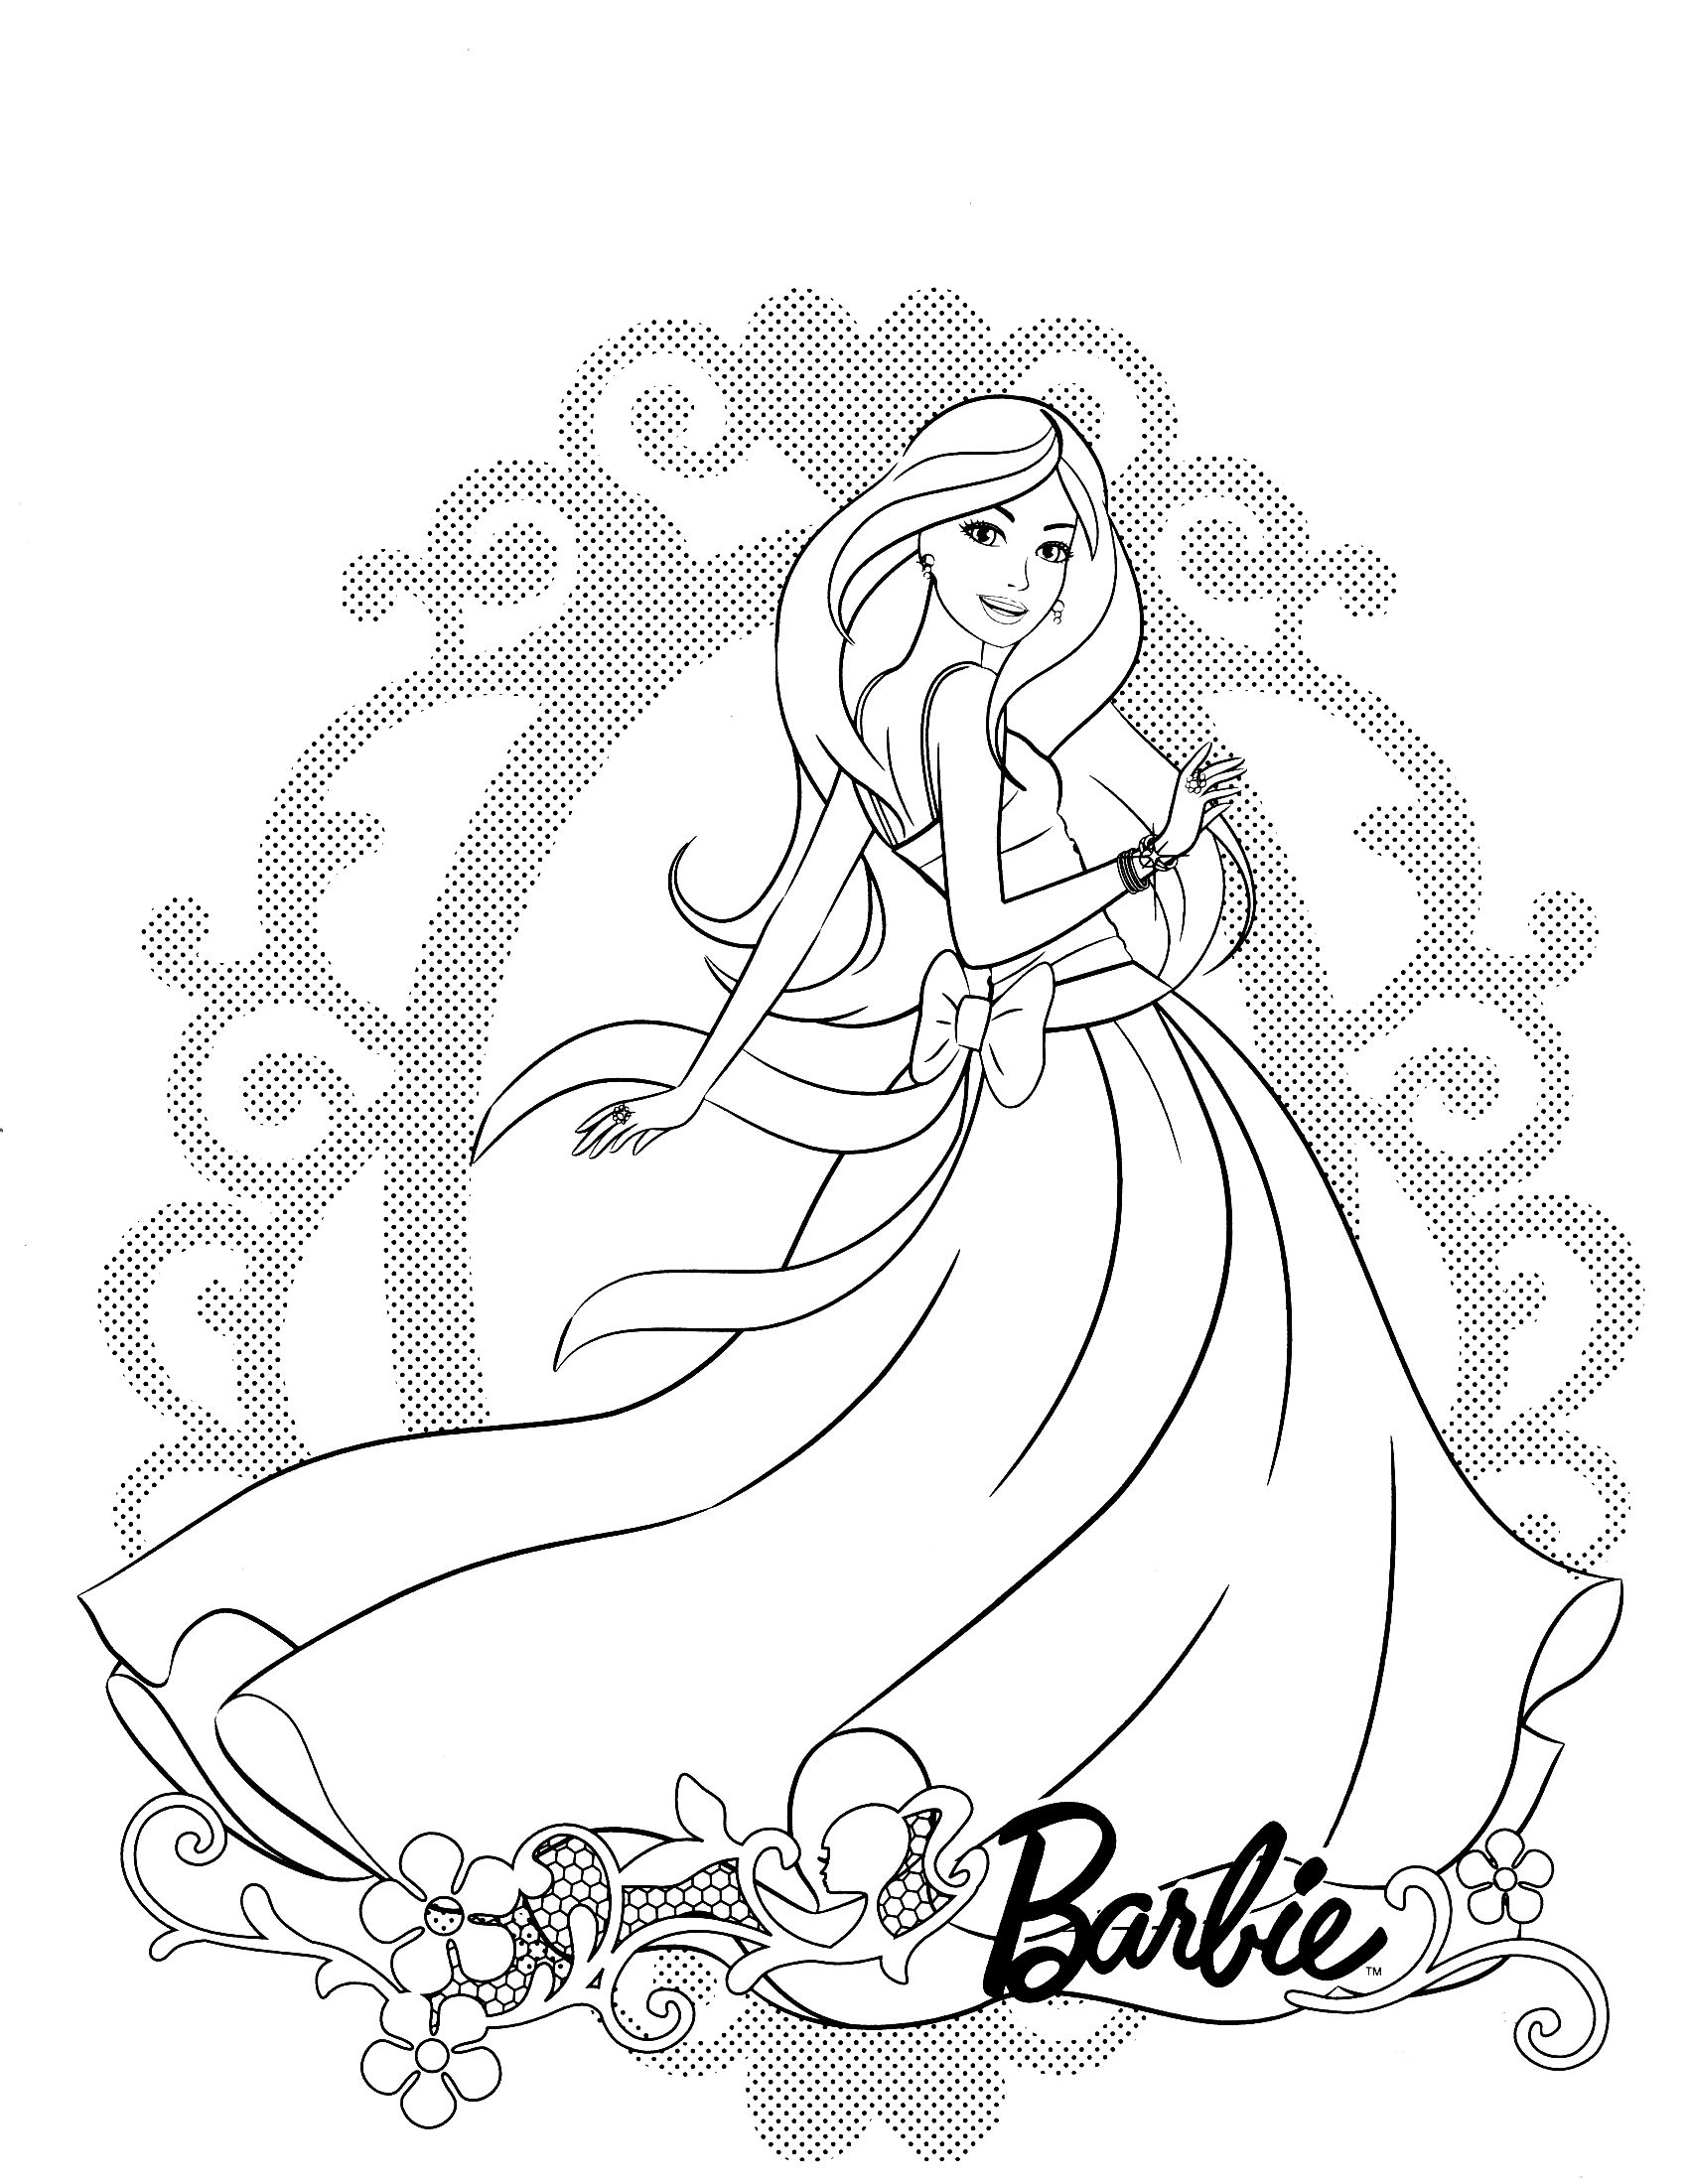 Barbie Dream House Coloring Pages | Coloring pages wallpaper ...